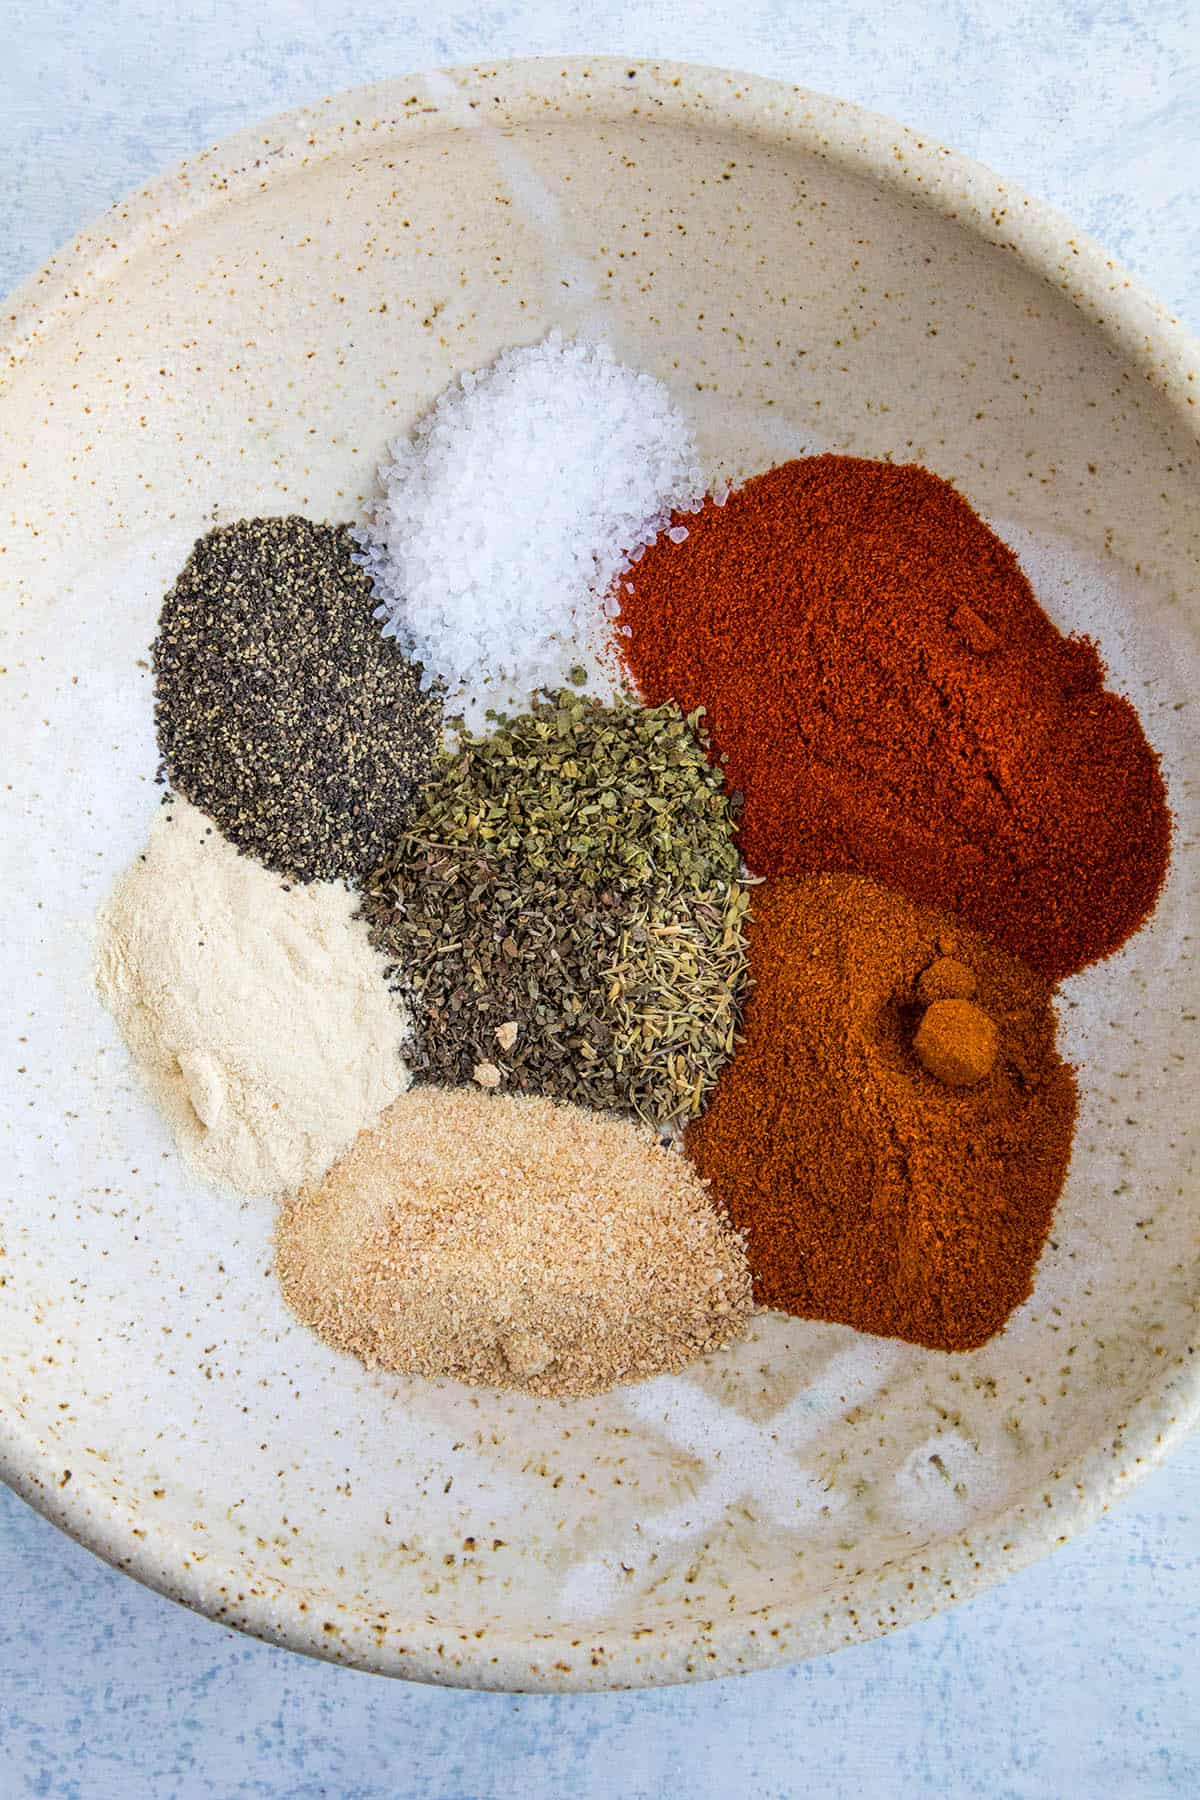 All of the ingredients in my Homemade Blackening Seasoning Recipe